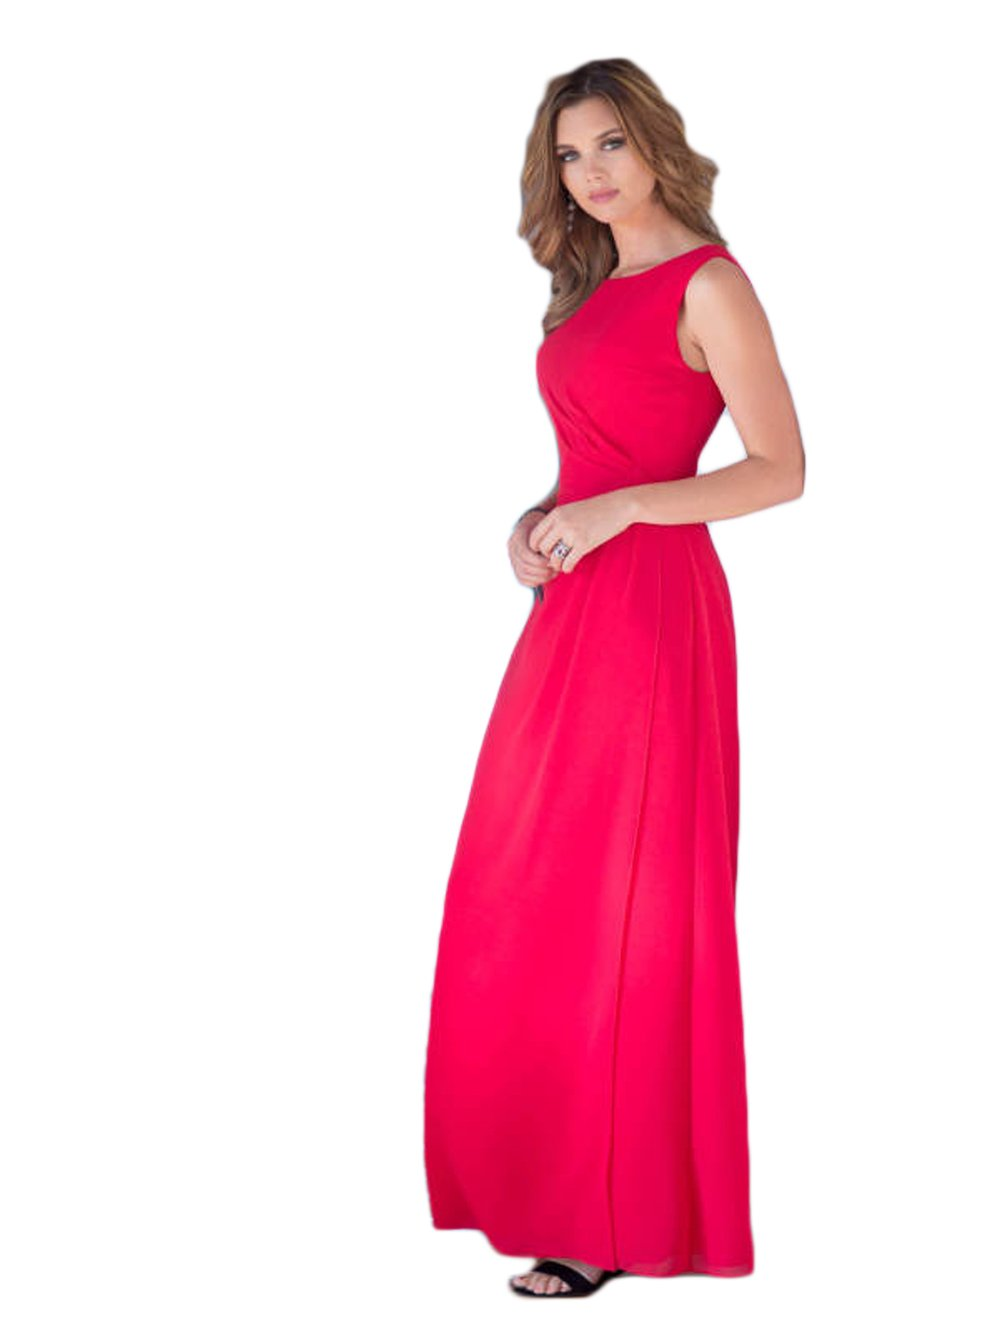 Love Dress Women Floor Length Prom Dresses Bridesmaid Gown Us 16